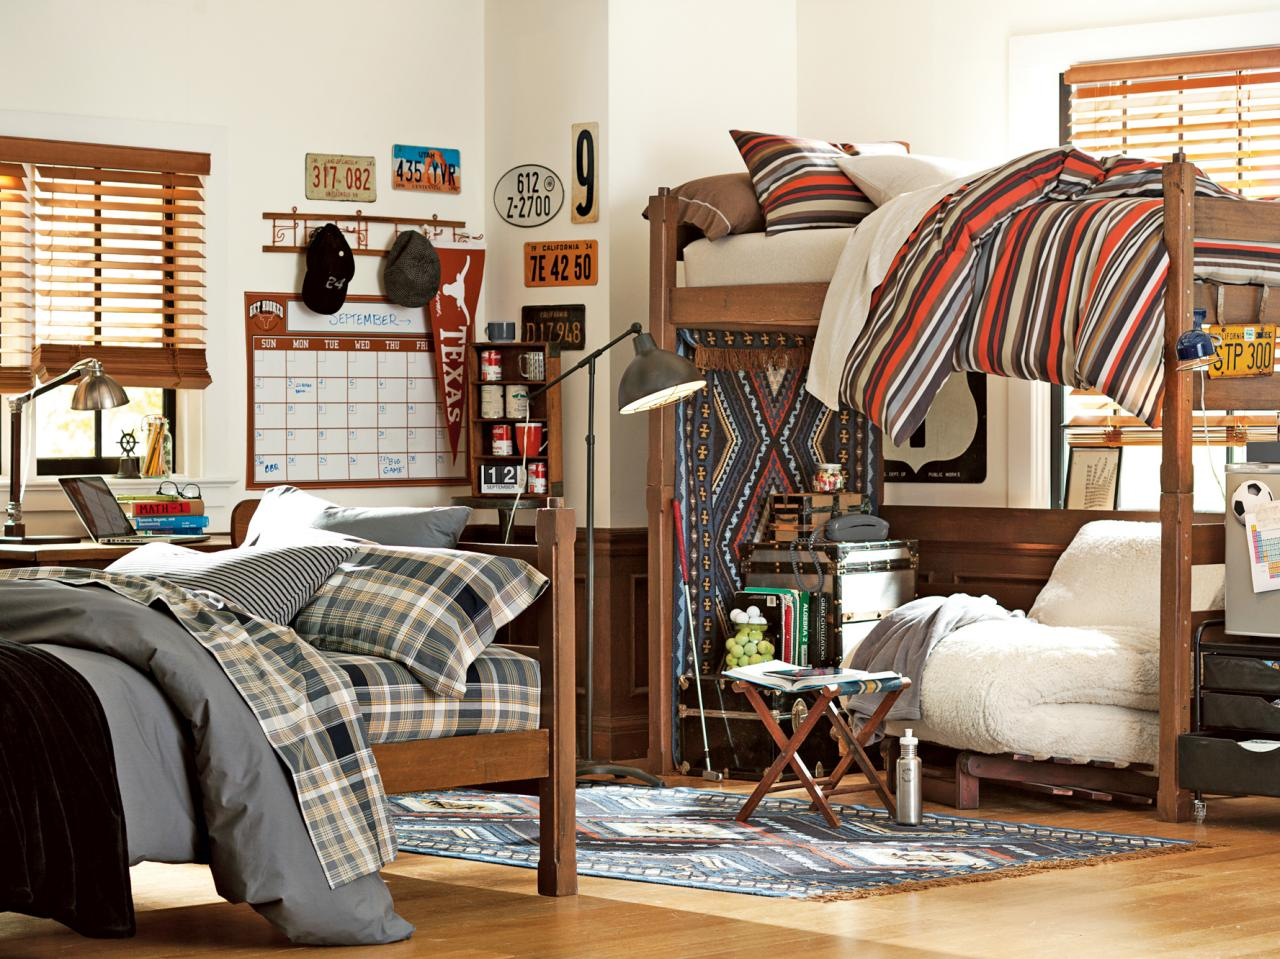 Dorm Room Storage, Seating, and Layout Checklist  HGTV